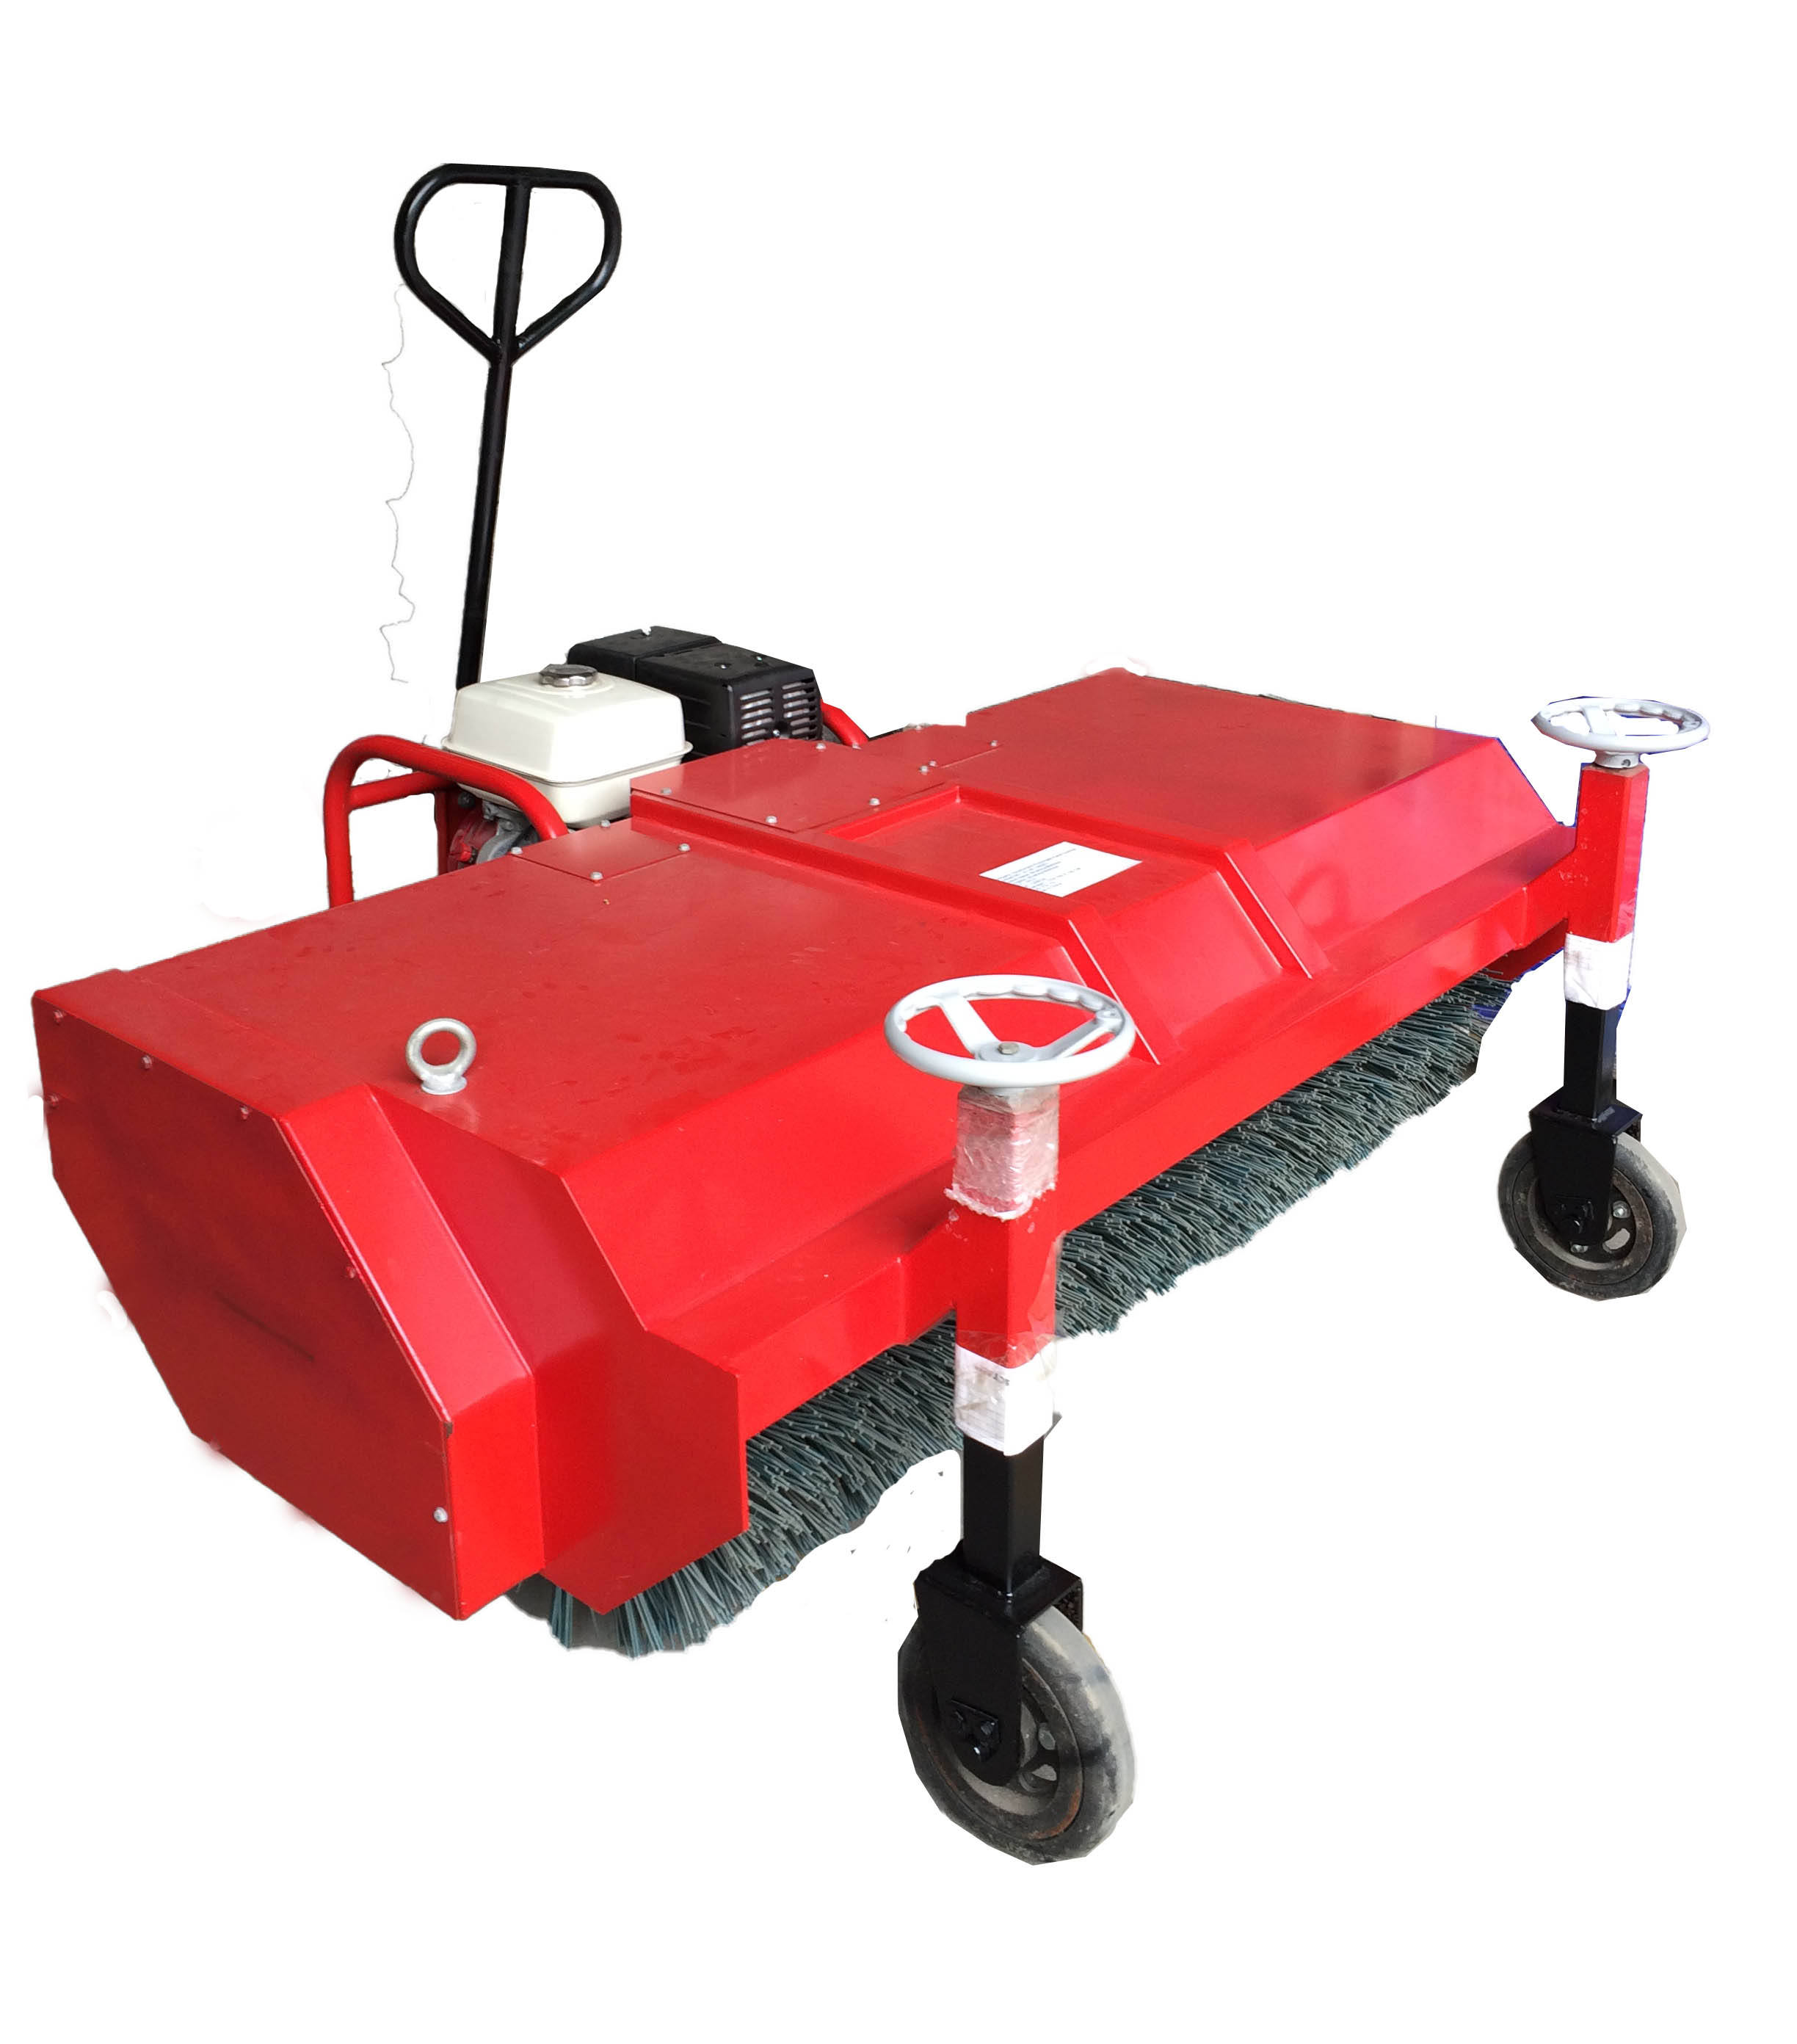 Artificial grass brushing machine, installation tools for synthetic turf